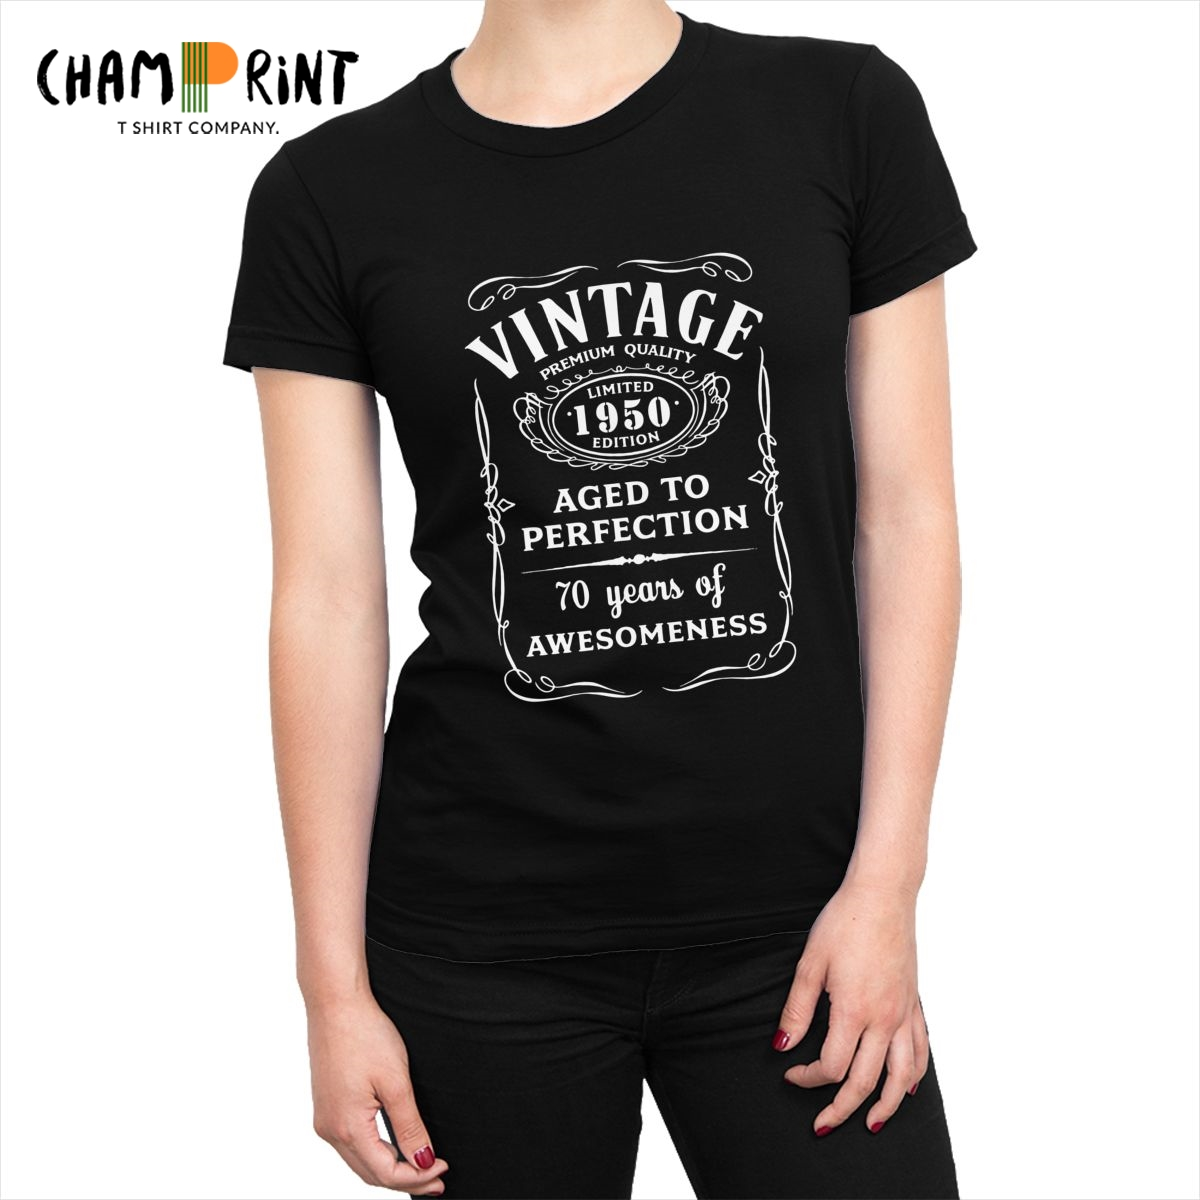 Limited 1950 Edition Women's T-<font><b>shirts</b></font> 70th <font><b>Birthday</b></font> Gift Harajuku T <font><b>Shirts</b></font> <font><b>70</b></font> Years Old Tops Tees Awesome Big Size Clothing image